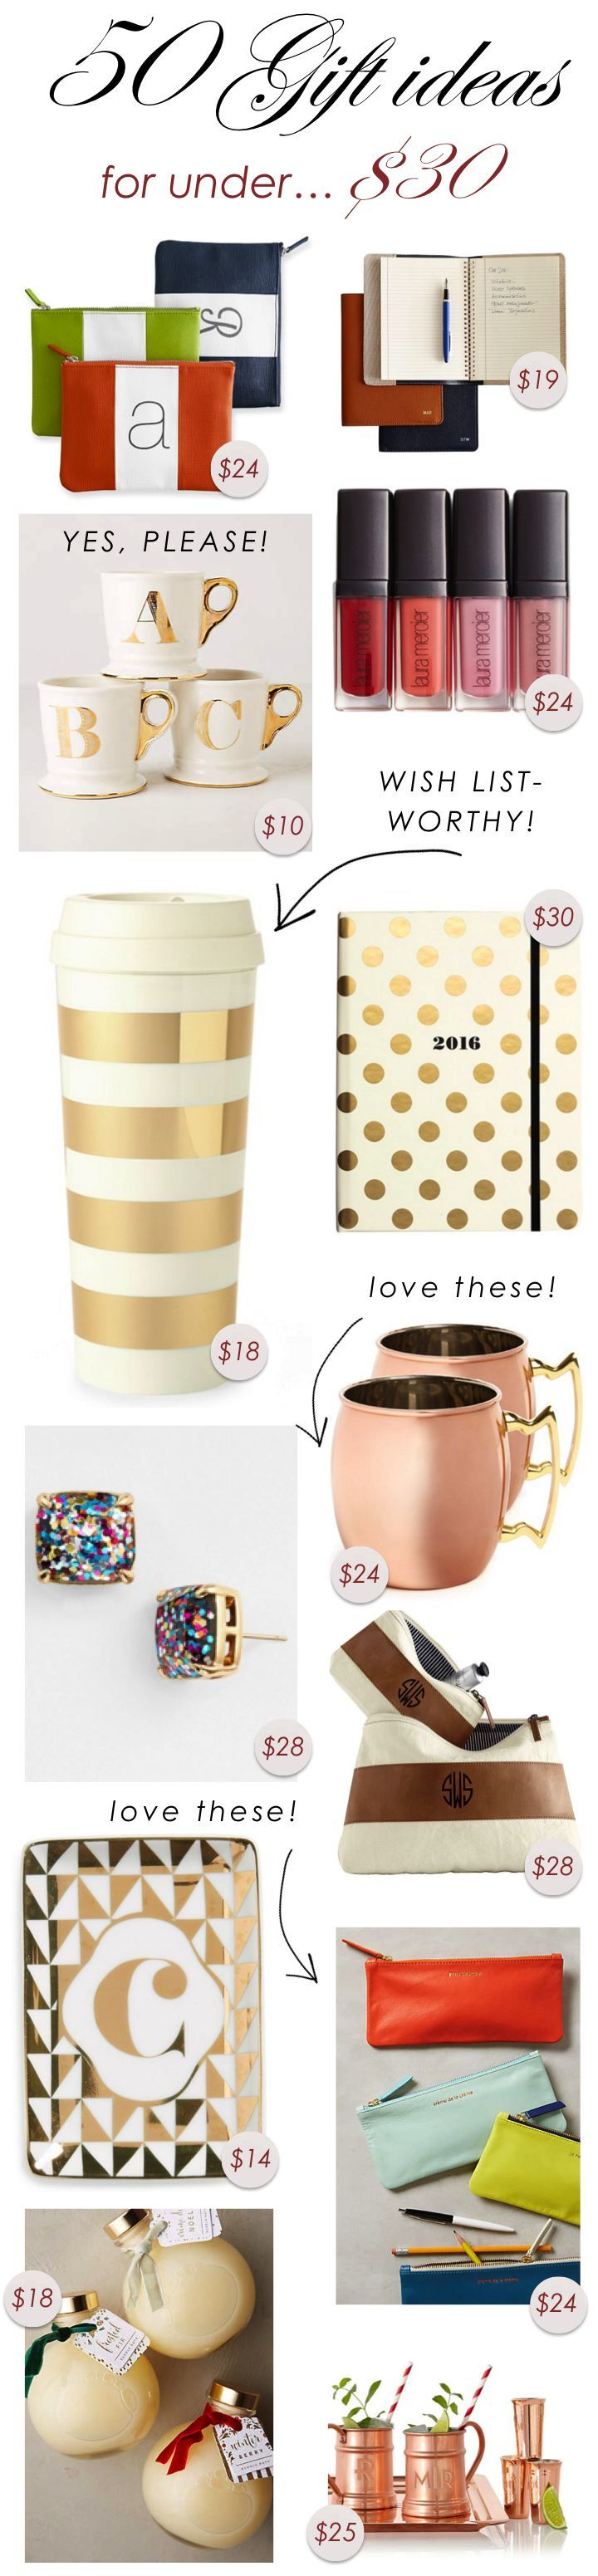 50 Gift Ideas for Under $30 | Gift and Birthdays